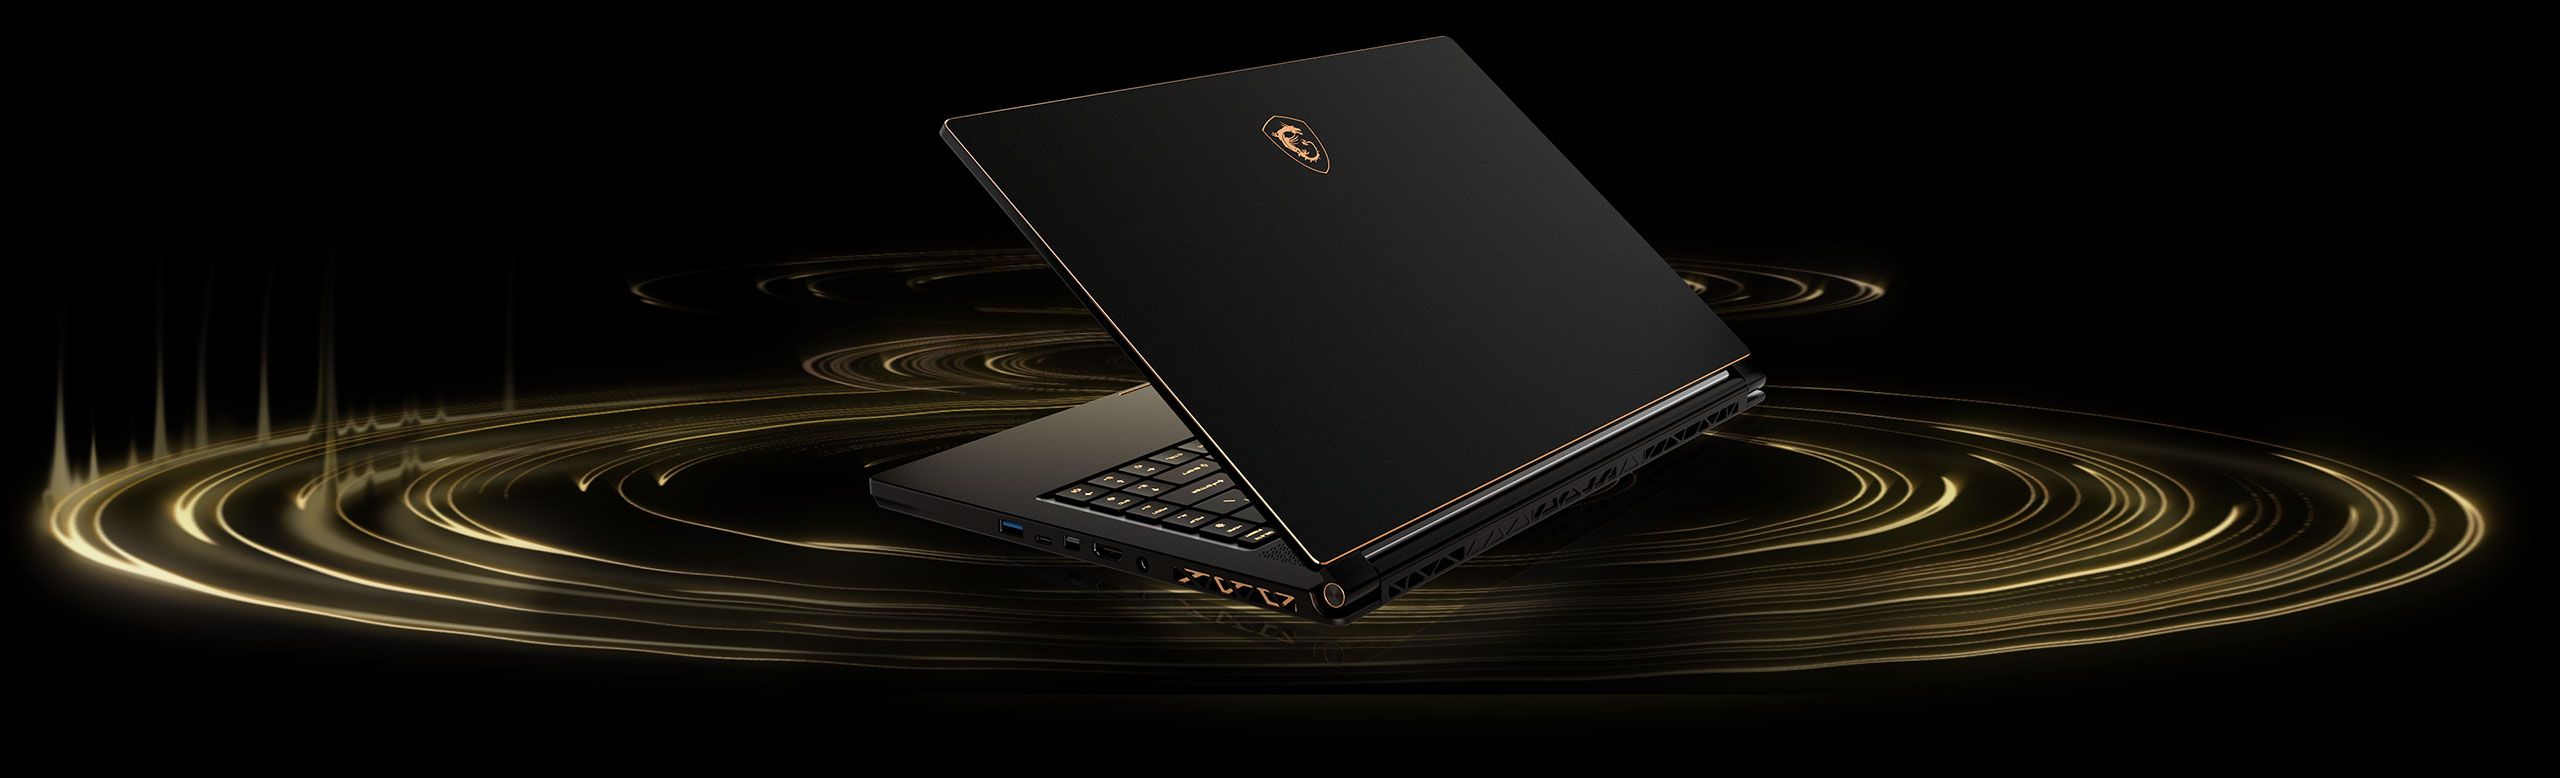 Msi Gs65 Stealth Thin 8rf Worlds First 144hz Bezel Gaming Laptop Alfa Img Showing Gt Basic Computer Monitor Diagram Enjoy Your Games And Music With The World Class Dynaudio Sound System Hi Res Audio Is Ready For Pro Headset Supporting Up To 24 Bit 192 Khz Sample